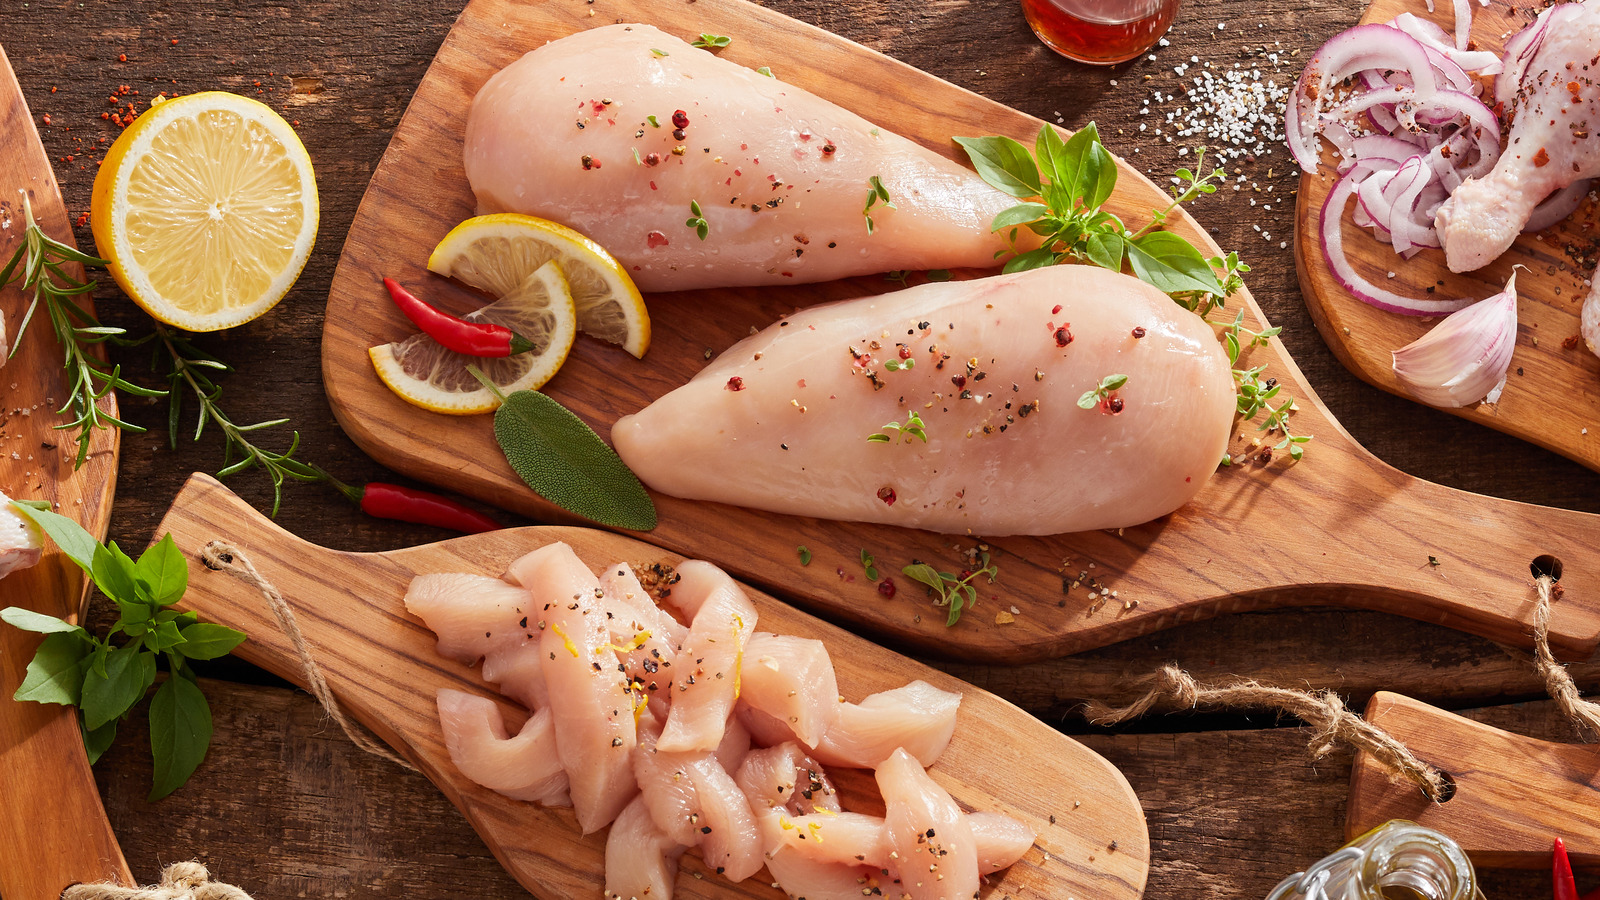 What happens if you accidentally eat raw chicken?